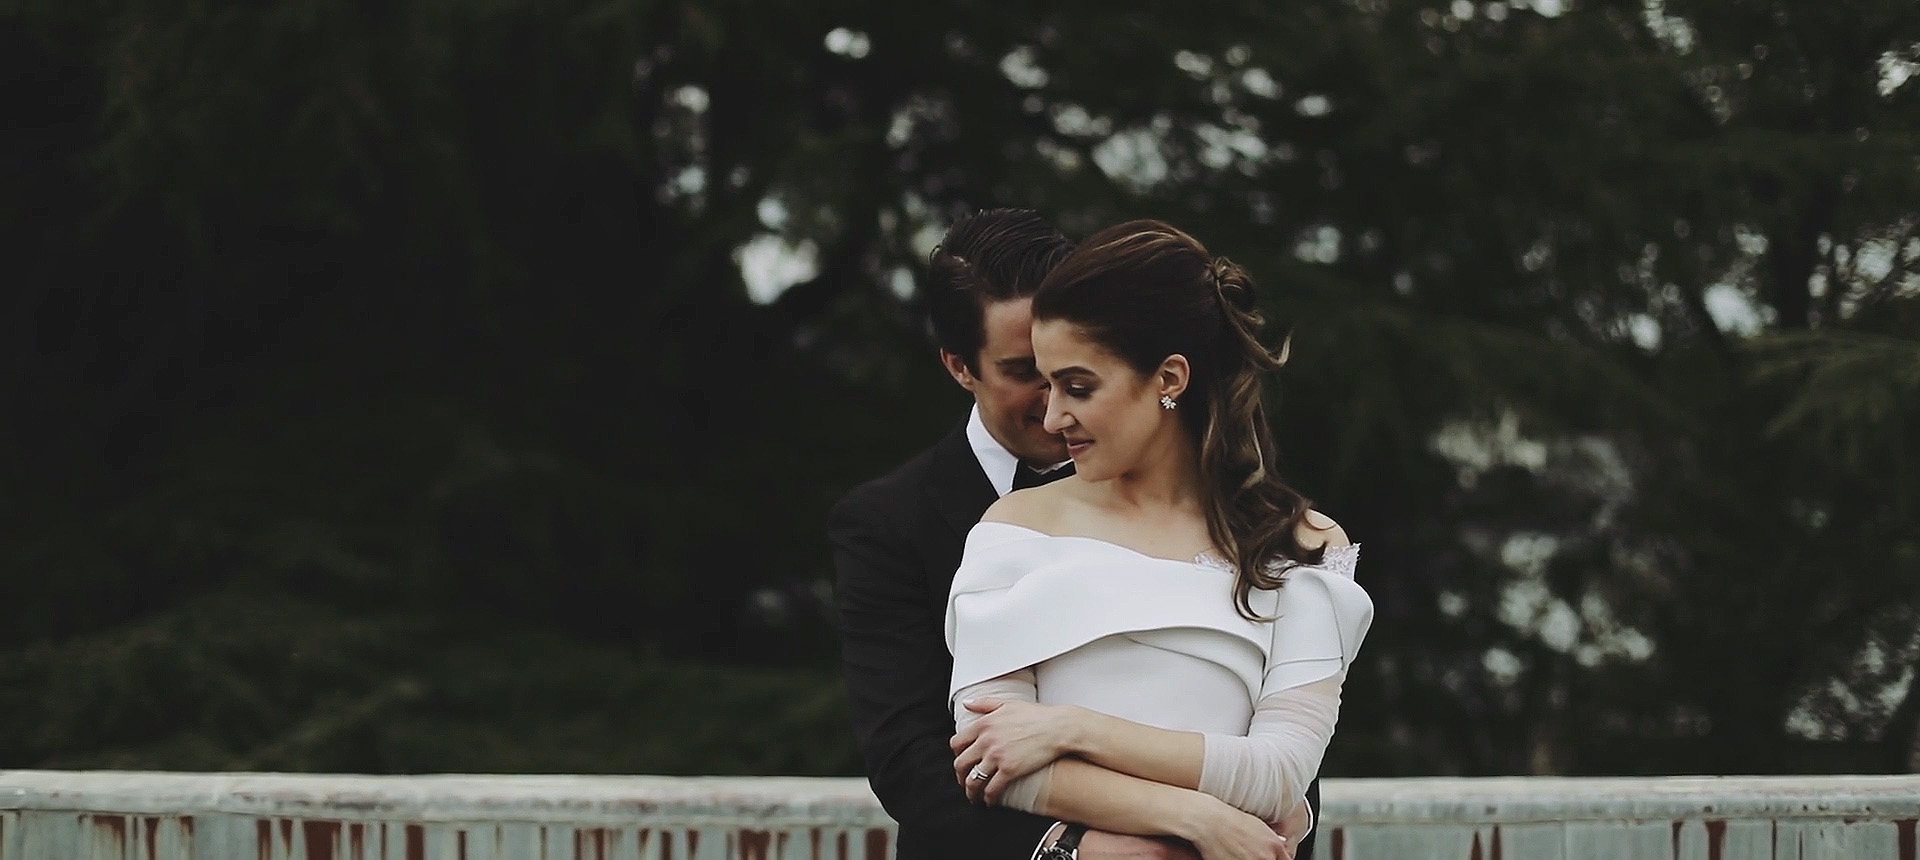 Annette-and-Dani-Films-Zoe and Daniel2-wedding-video.jpg